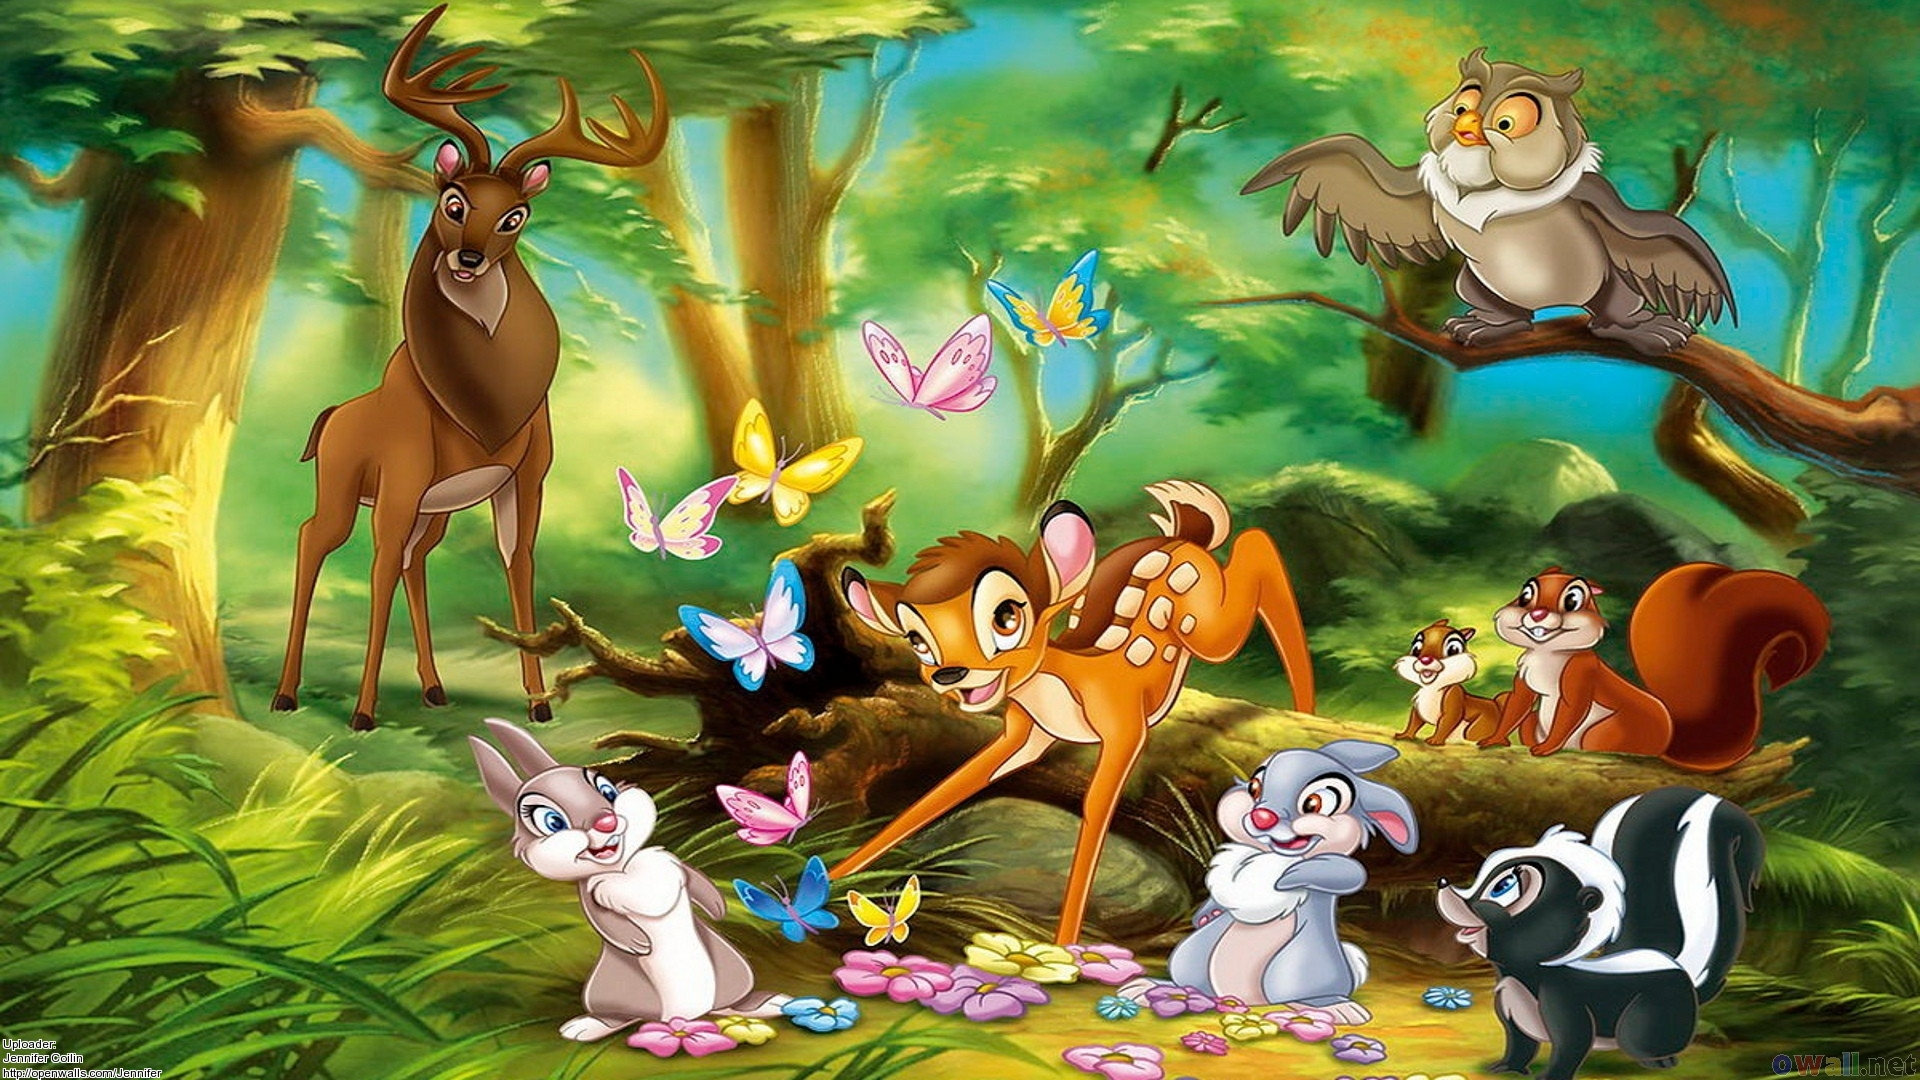 Disney Movies Hd Wallpapers: 35 Animation Wallpapers In High Definition For Desktops